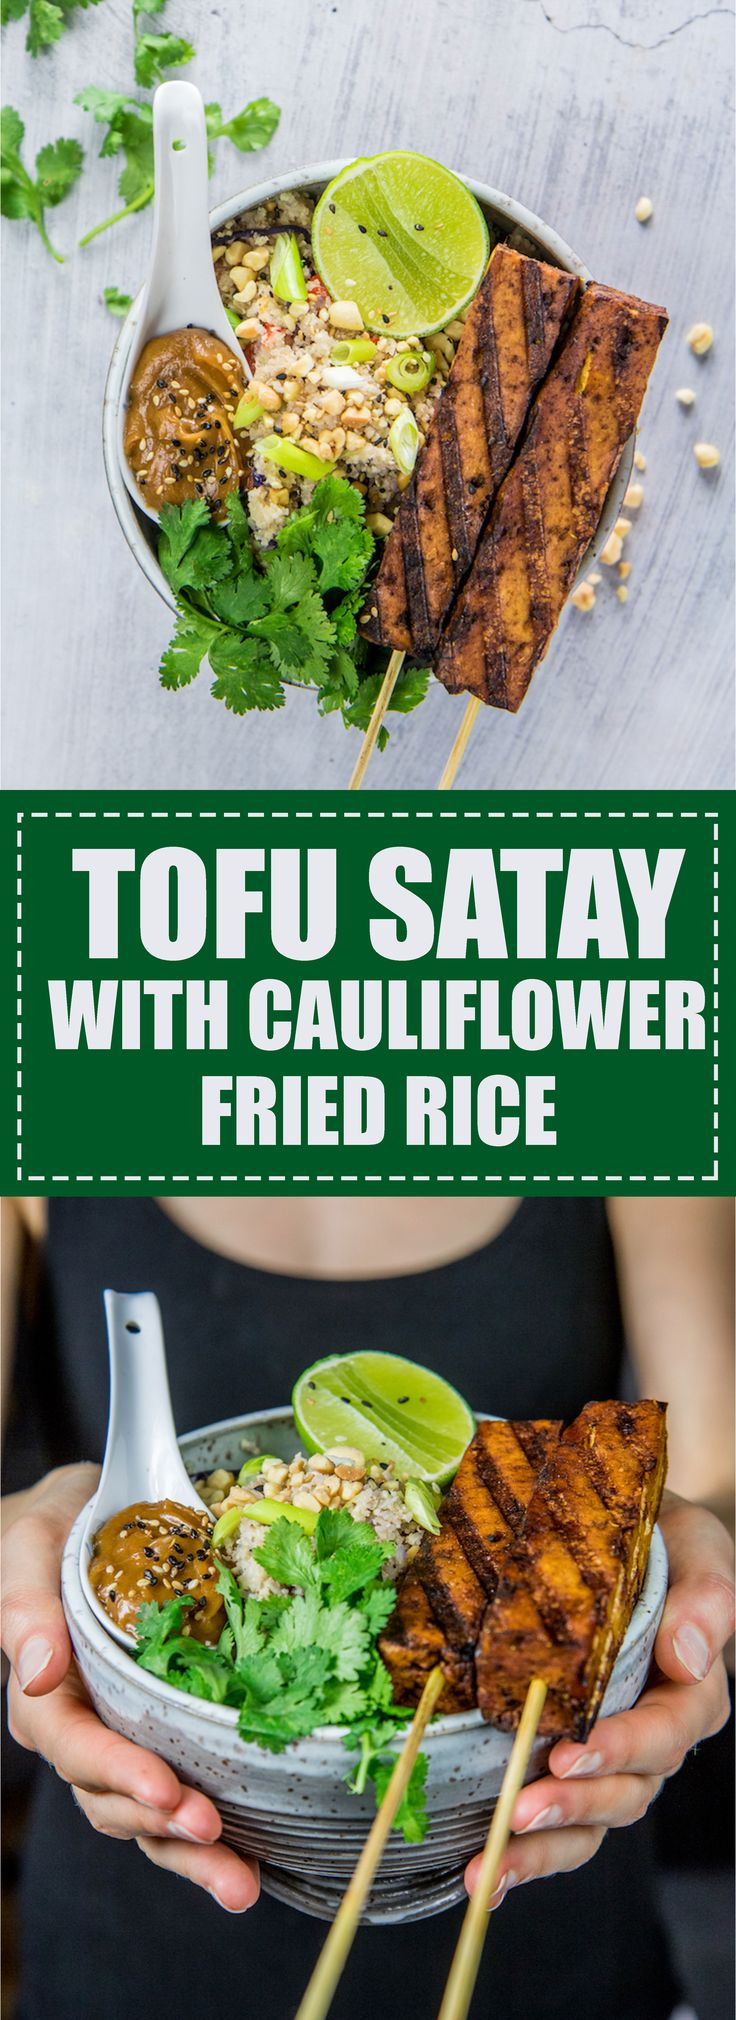 This tofu satay with cauliflower fried rice is a healthy favourite in my house! Vegan & gluten-free.